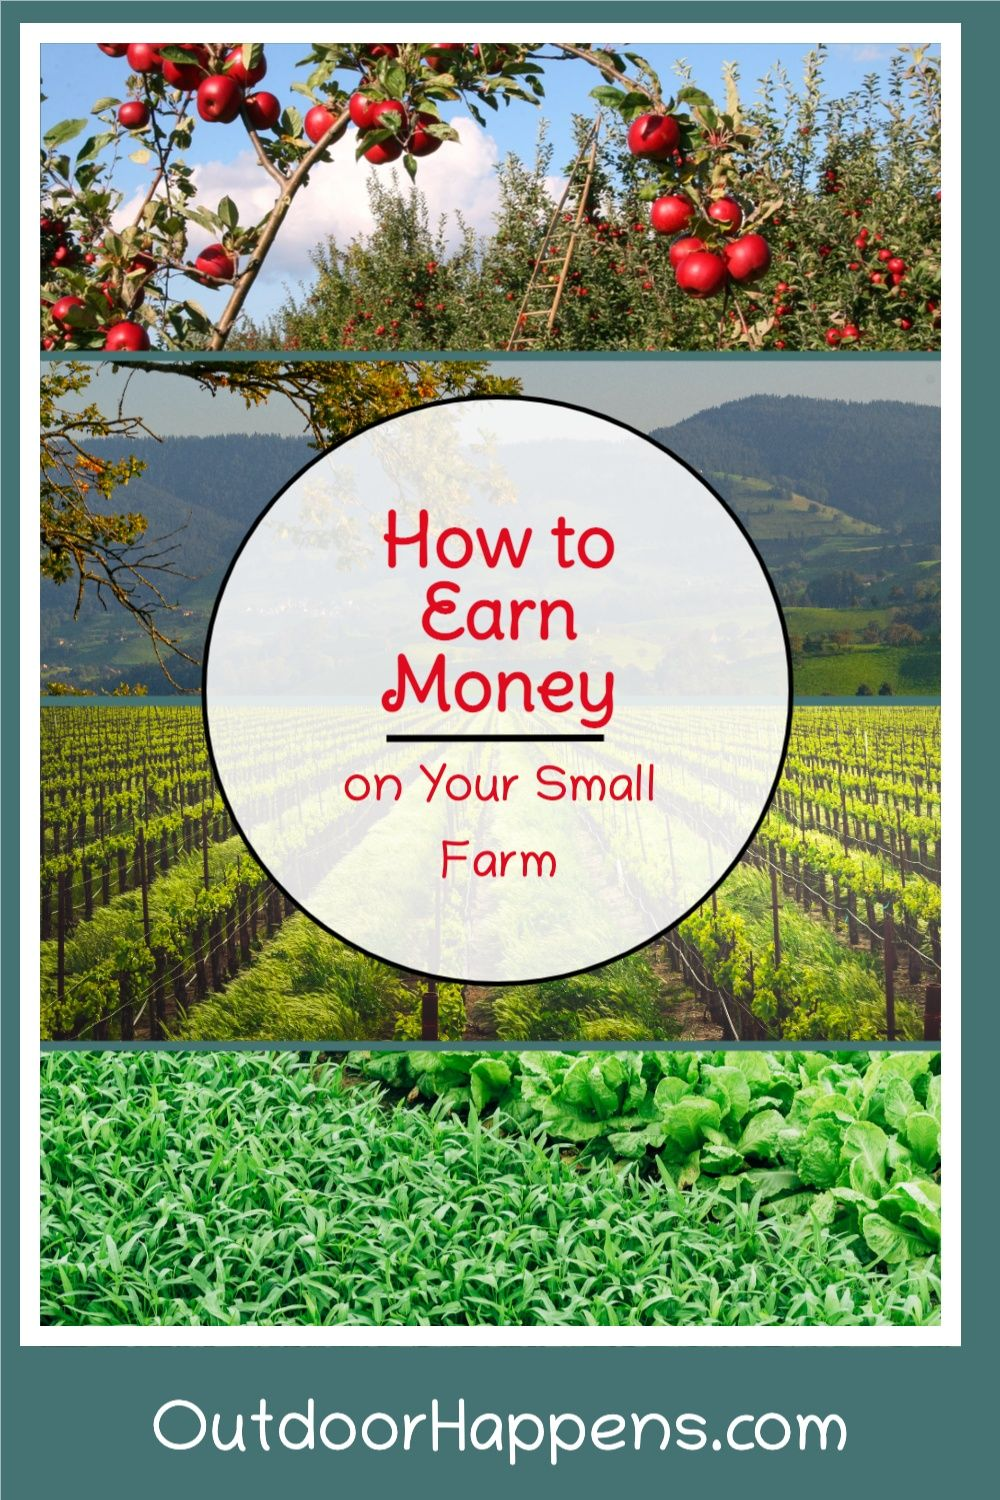 504cc87d52753e1c7f757d8f9821c98e - How Much Does A Self Employed Gardener Earn